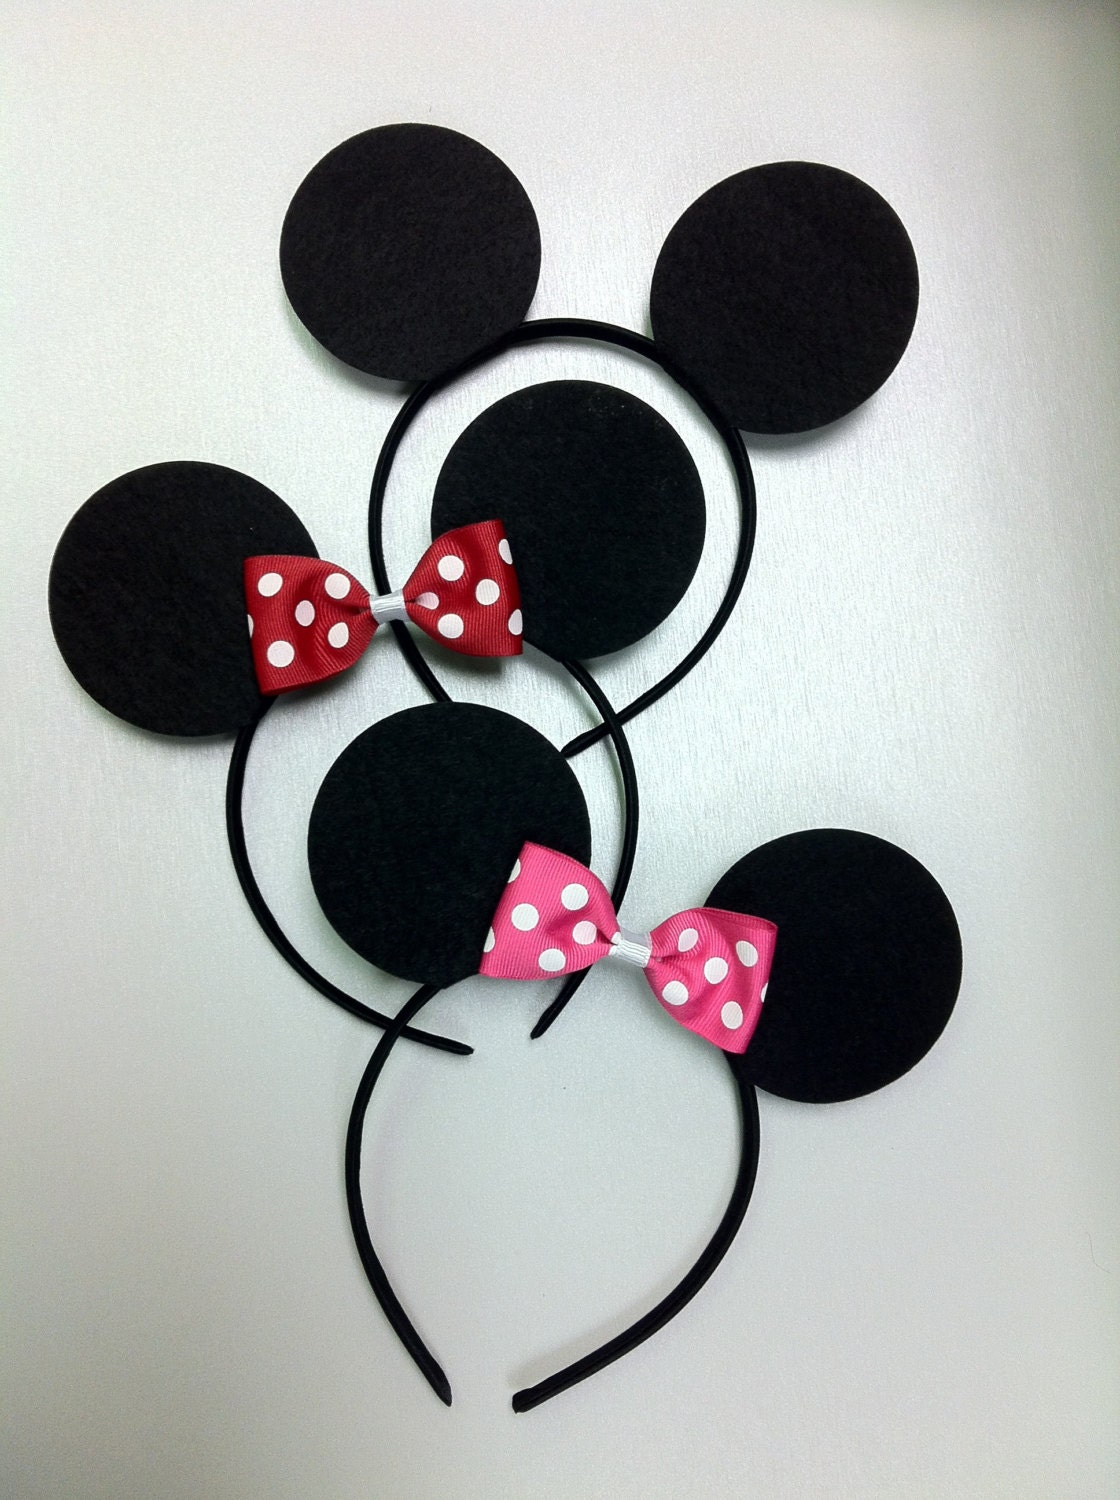 You searched for: on sale mickey ears! Etsy is the home to thousands of handmade, vintage, and one-of-a-kind products and gifts related to your search. No matter what you're looking for or where you are in the world, our global marketplace of sellers can help you .